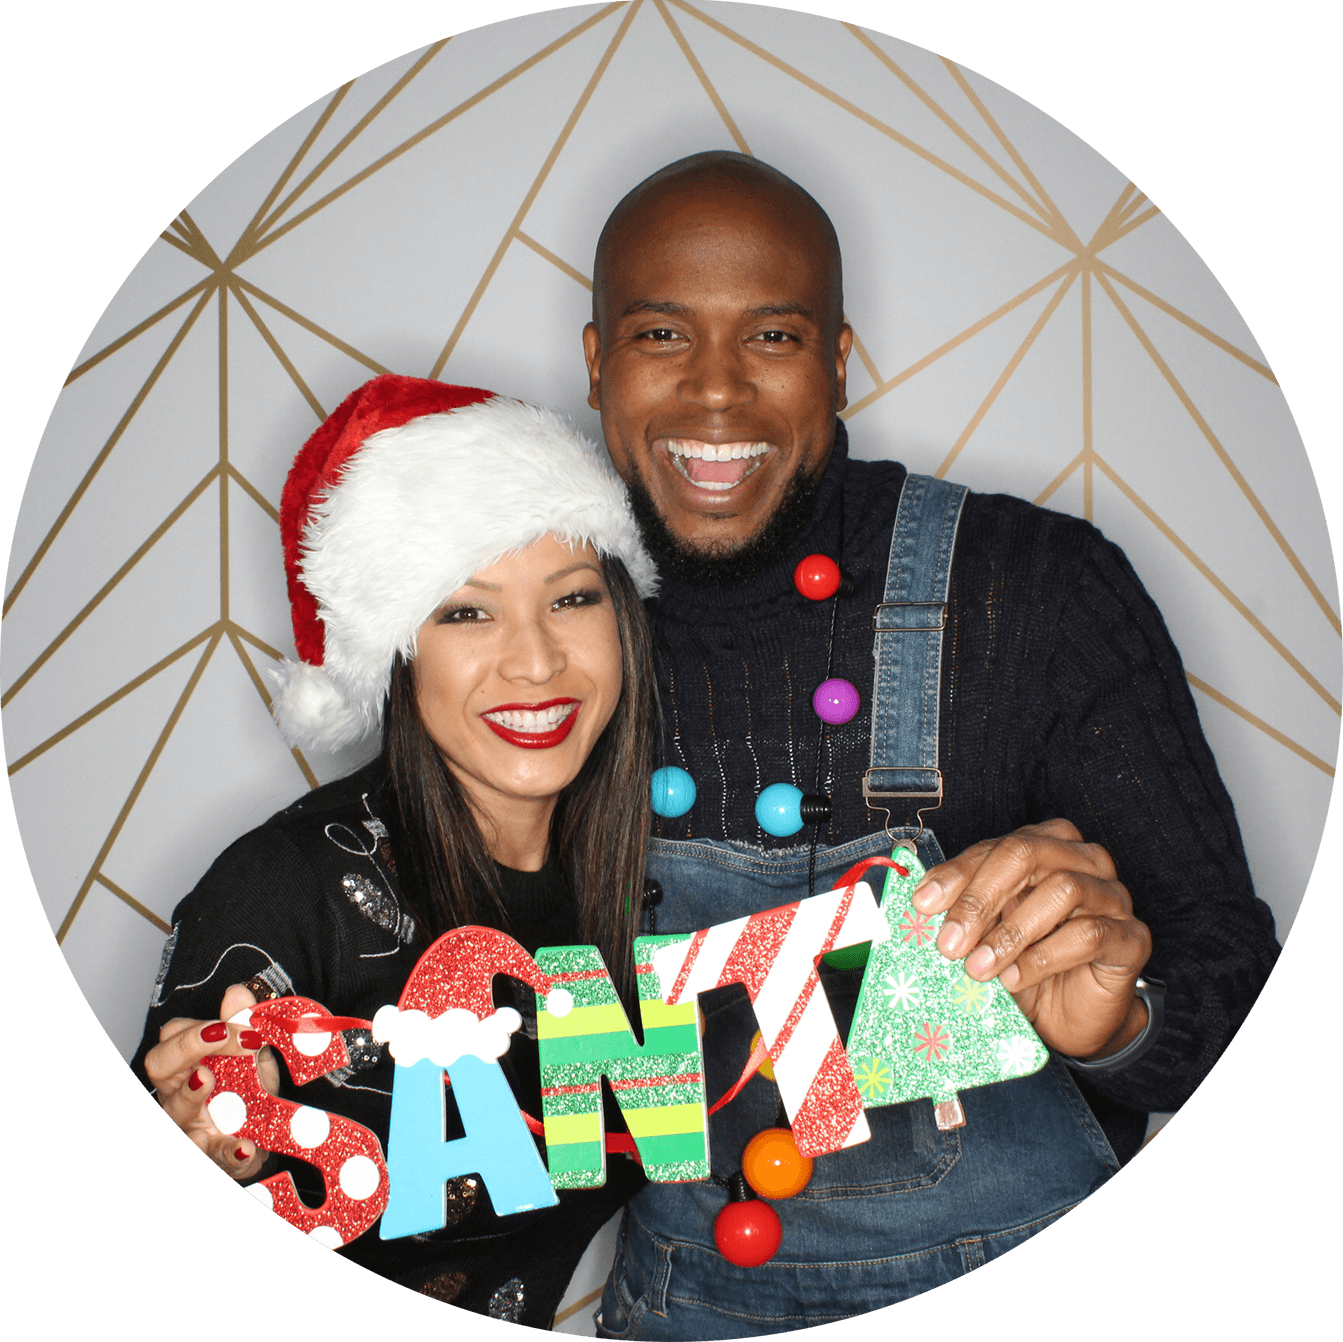 Rodeo Dental Holiday Party Htx Photo Booth